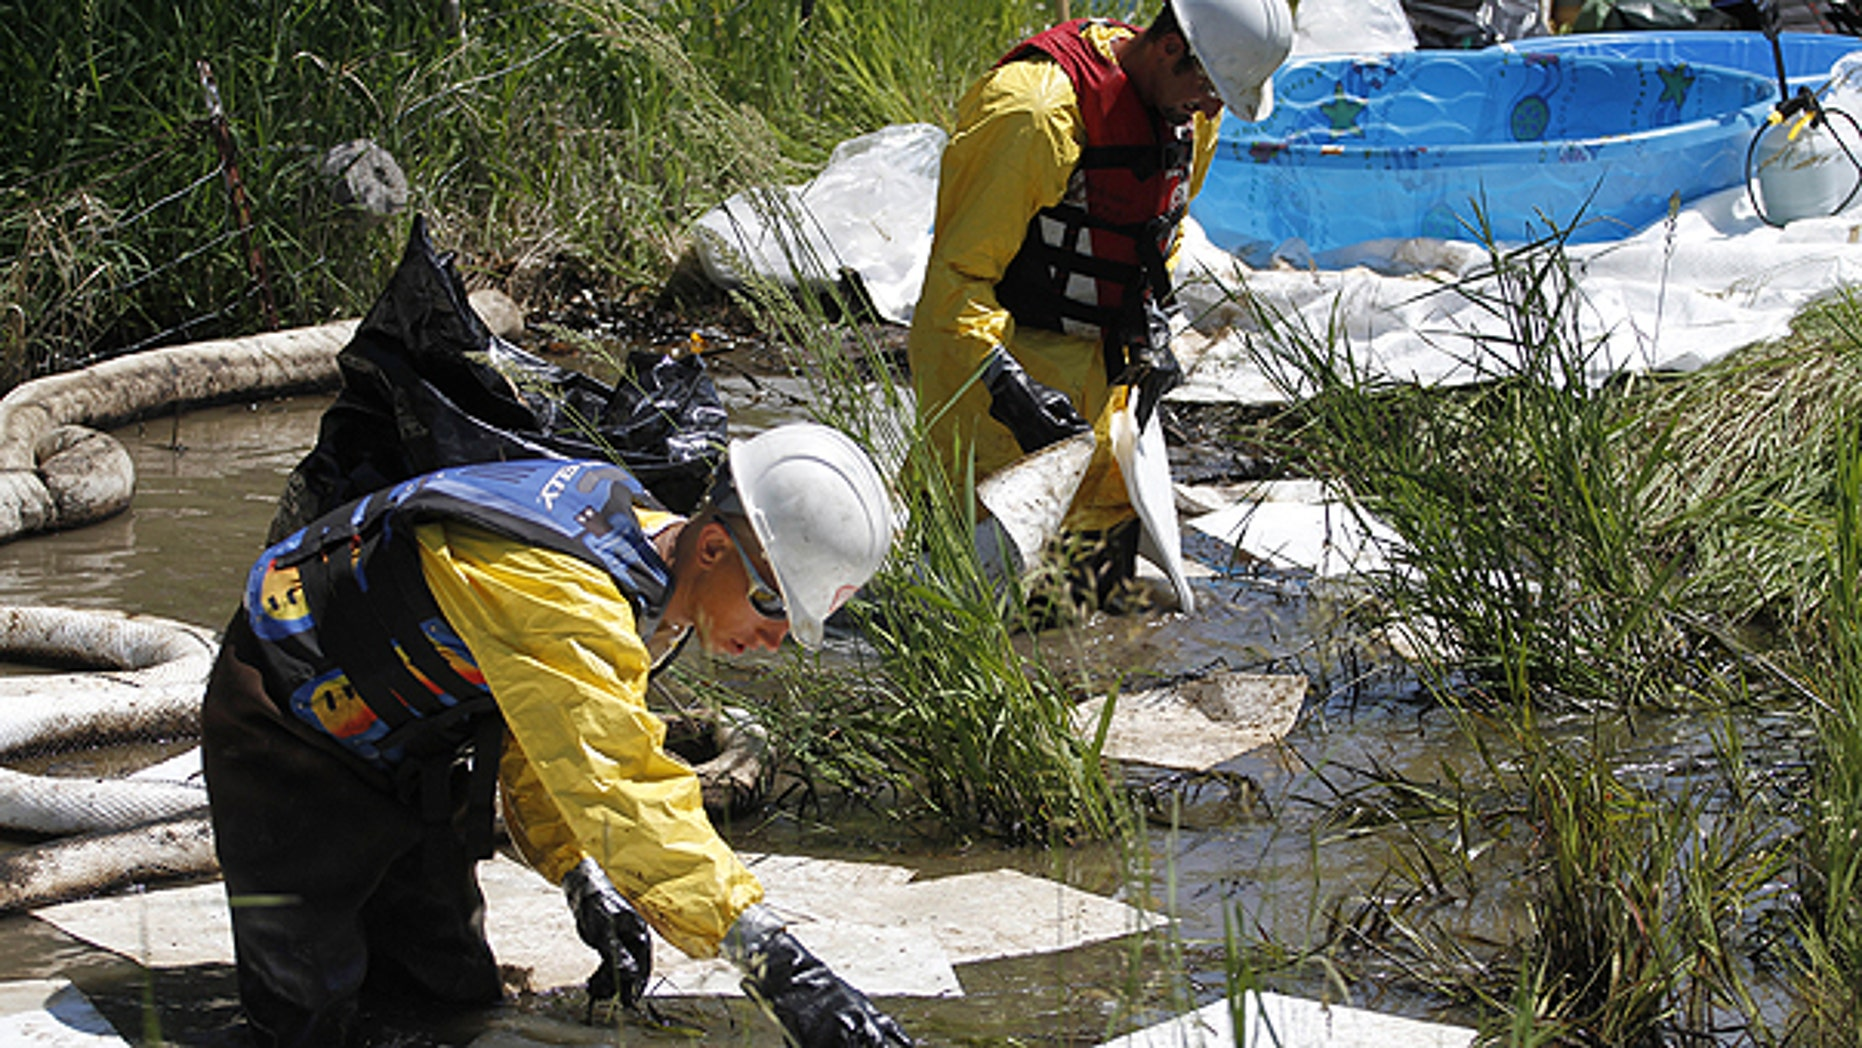 July 5: Cleanup crews work to clear oil from along side the Yellowstone River in Laurel, Mont.